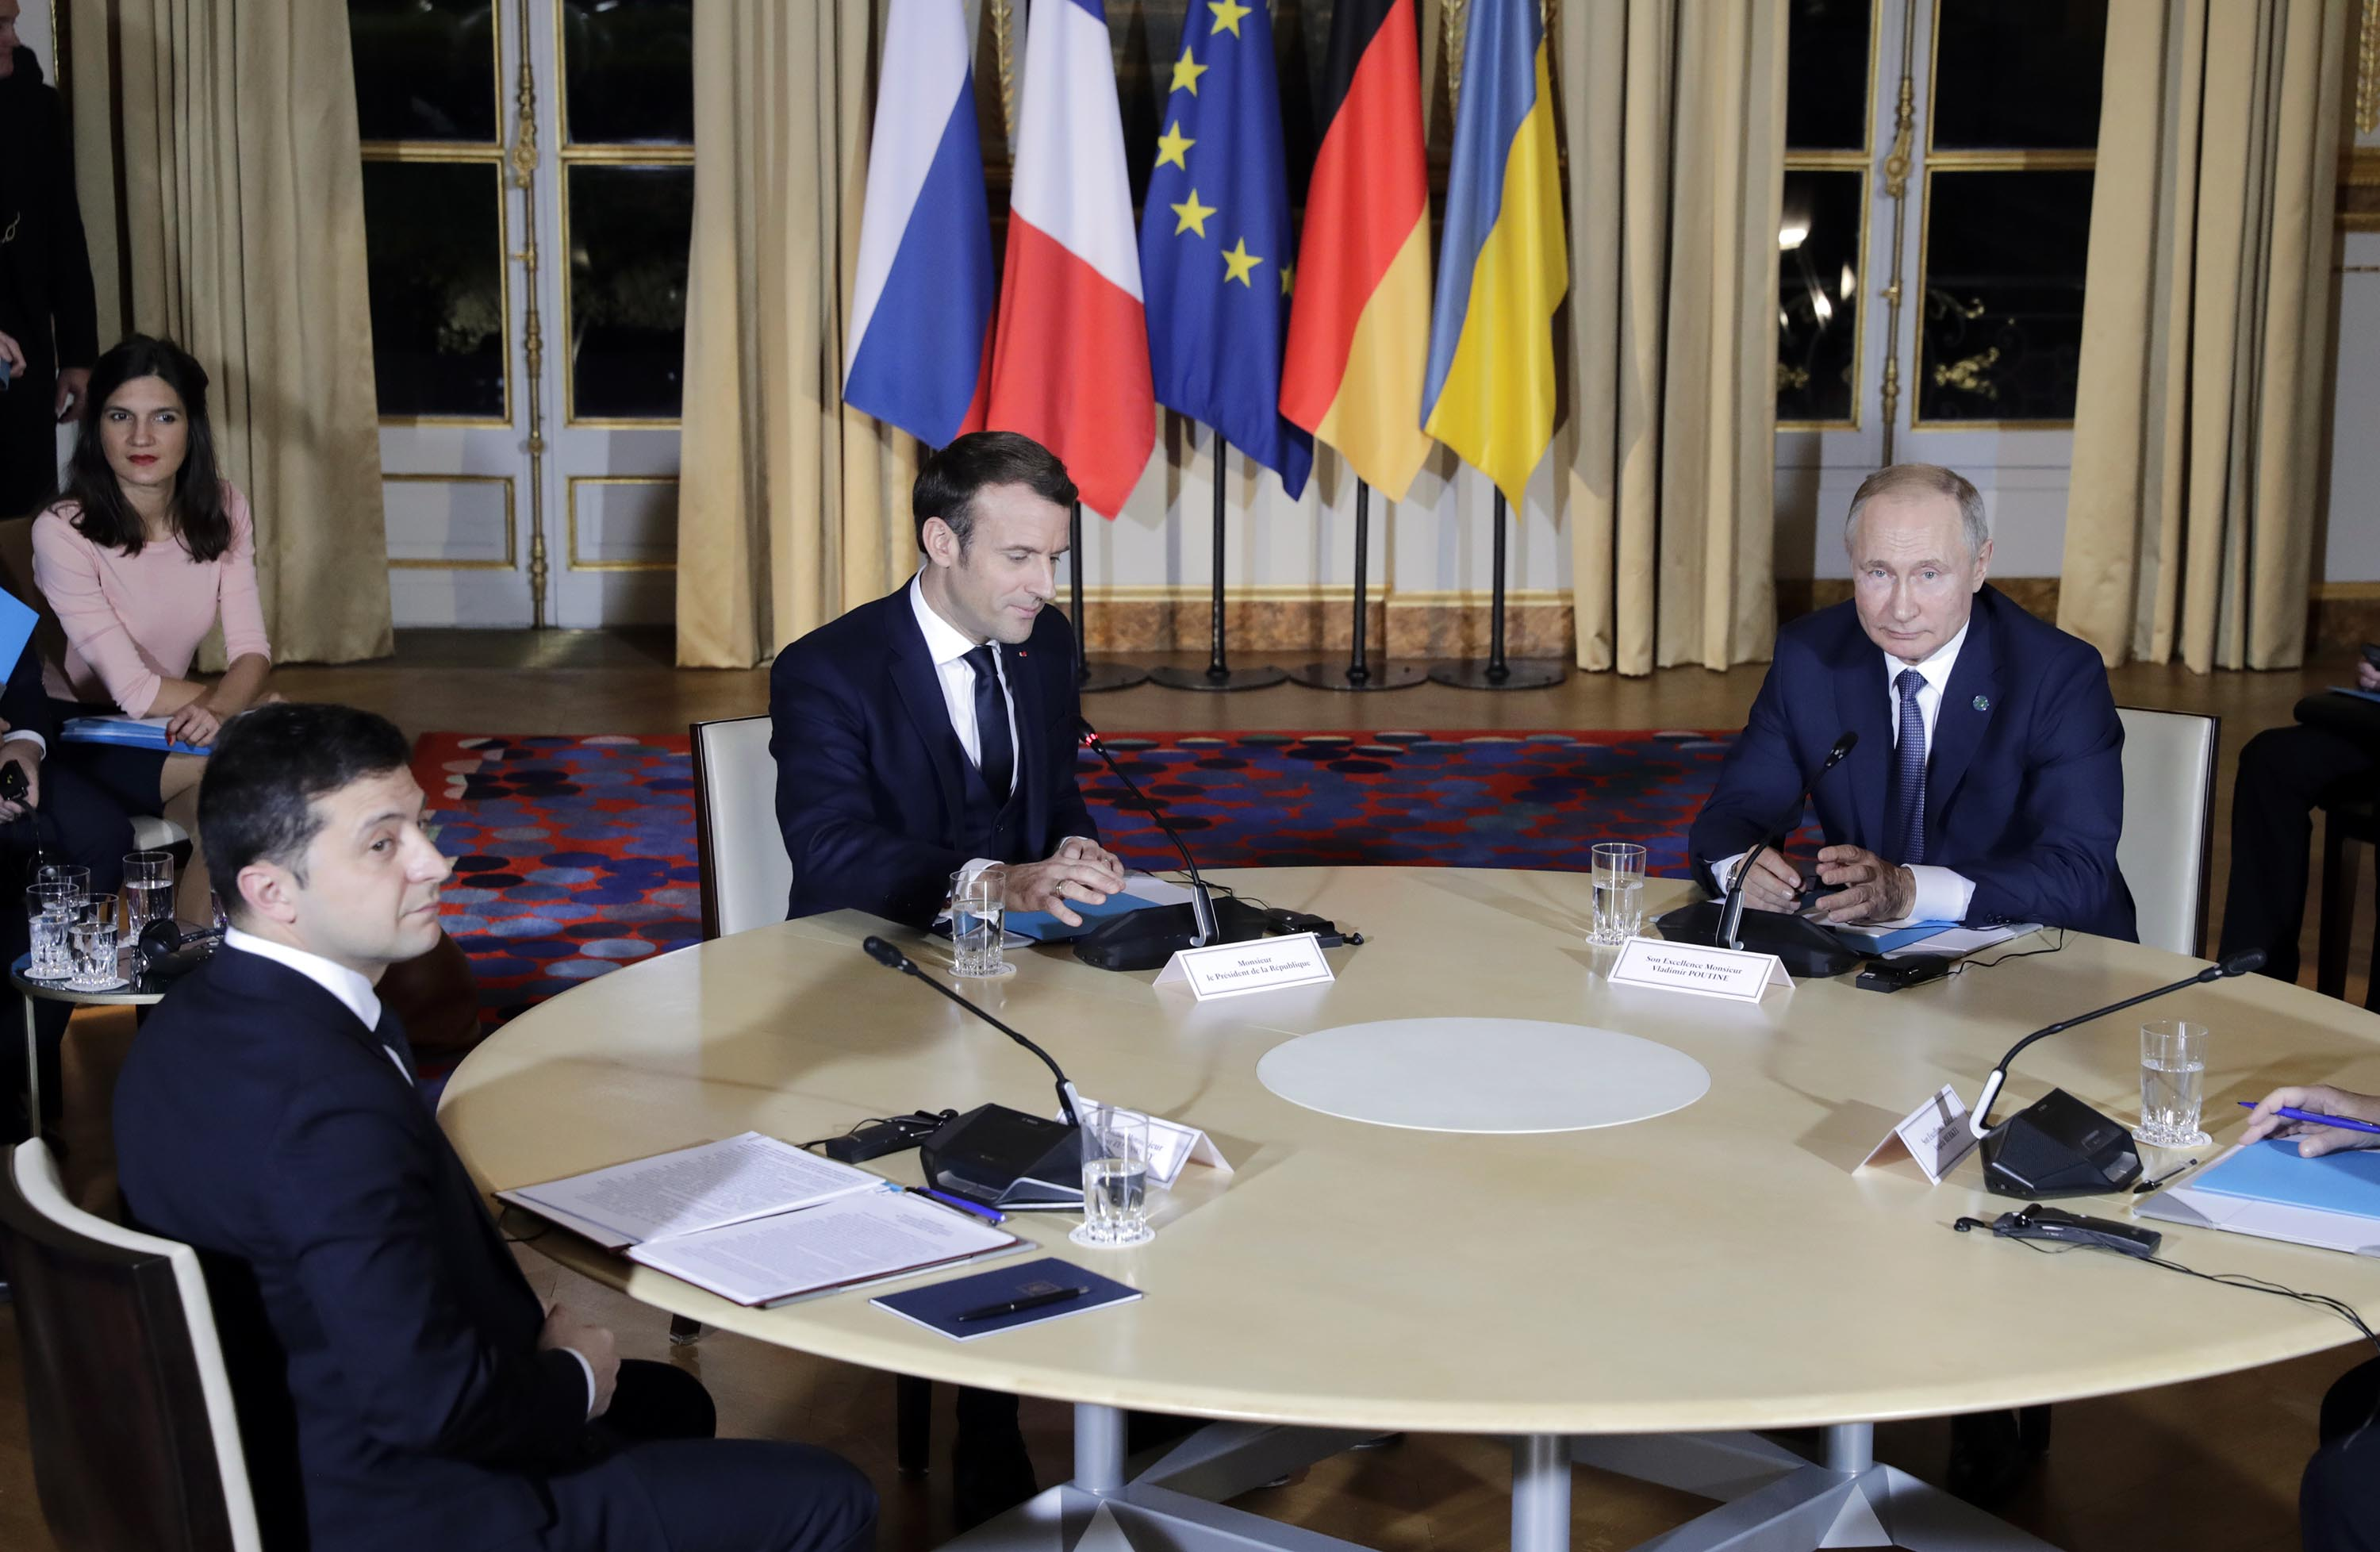 Ukraine's President Zelensky, France's President Macron, and Russia's President Putin (L-R seated) attend a Normandy Four summit in the Elysee Palace on December 9.